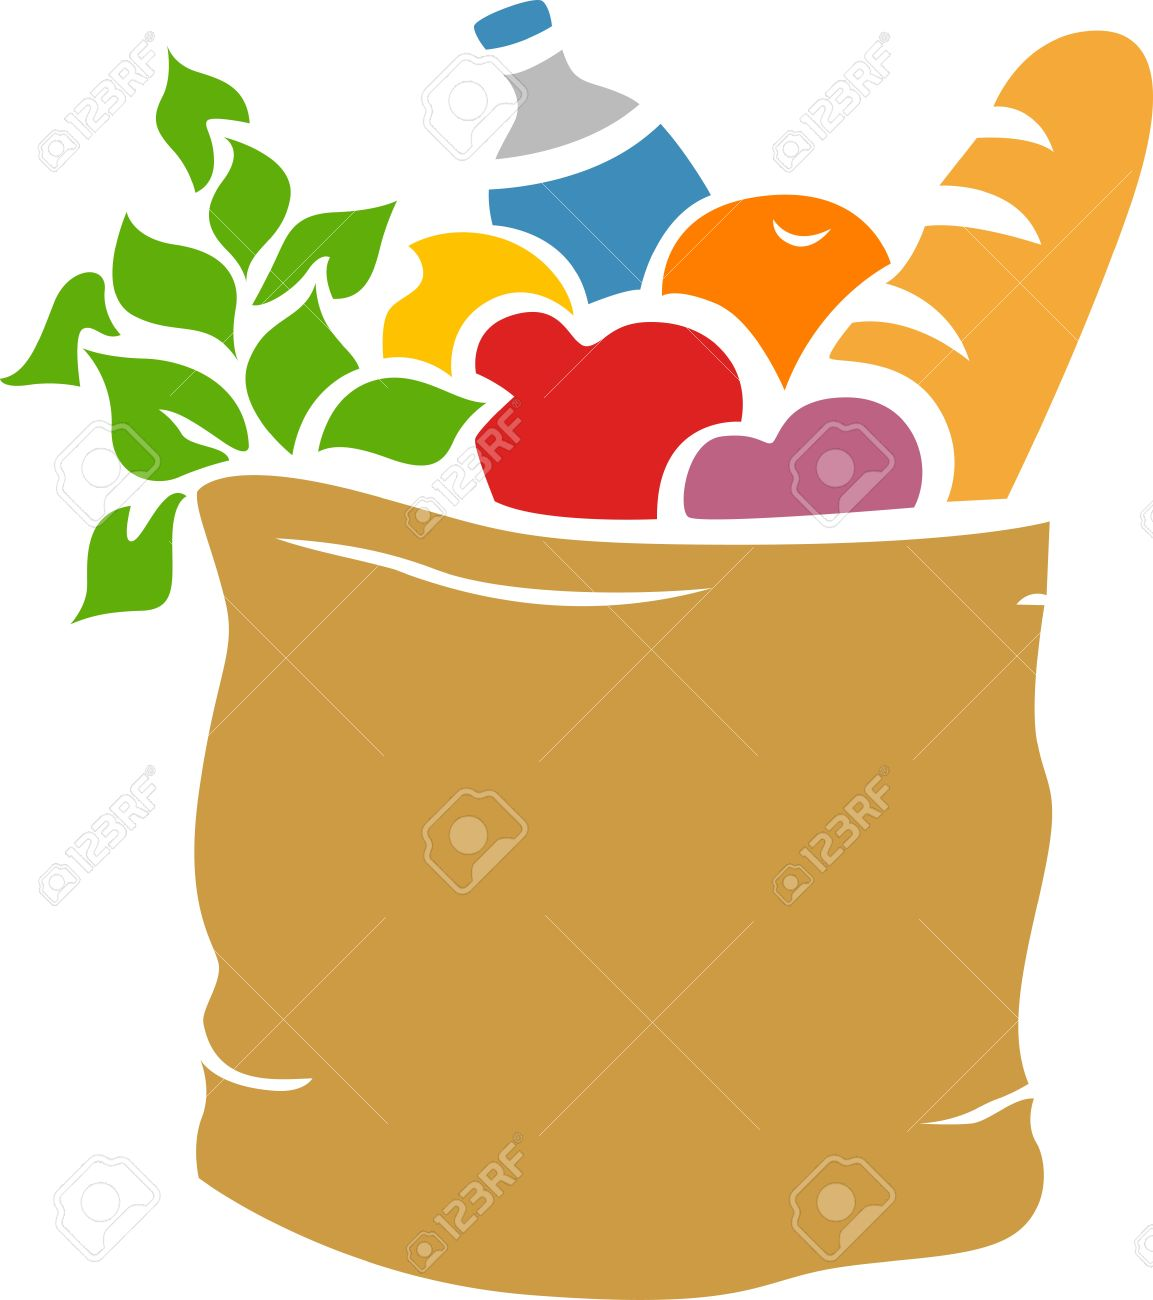 illustration of grocery bag full of groceries stencil stock photo rh 123rf com  cute grocery bag clipart